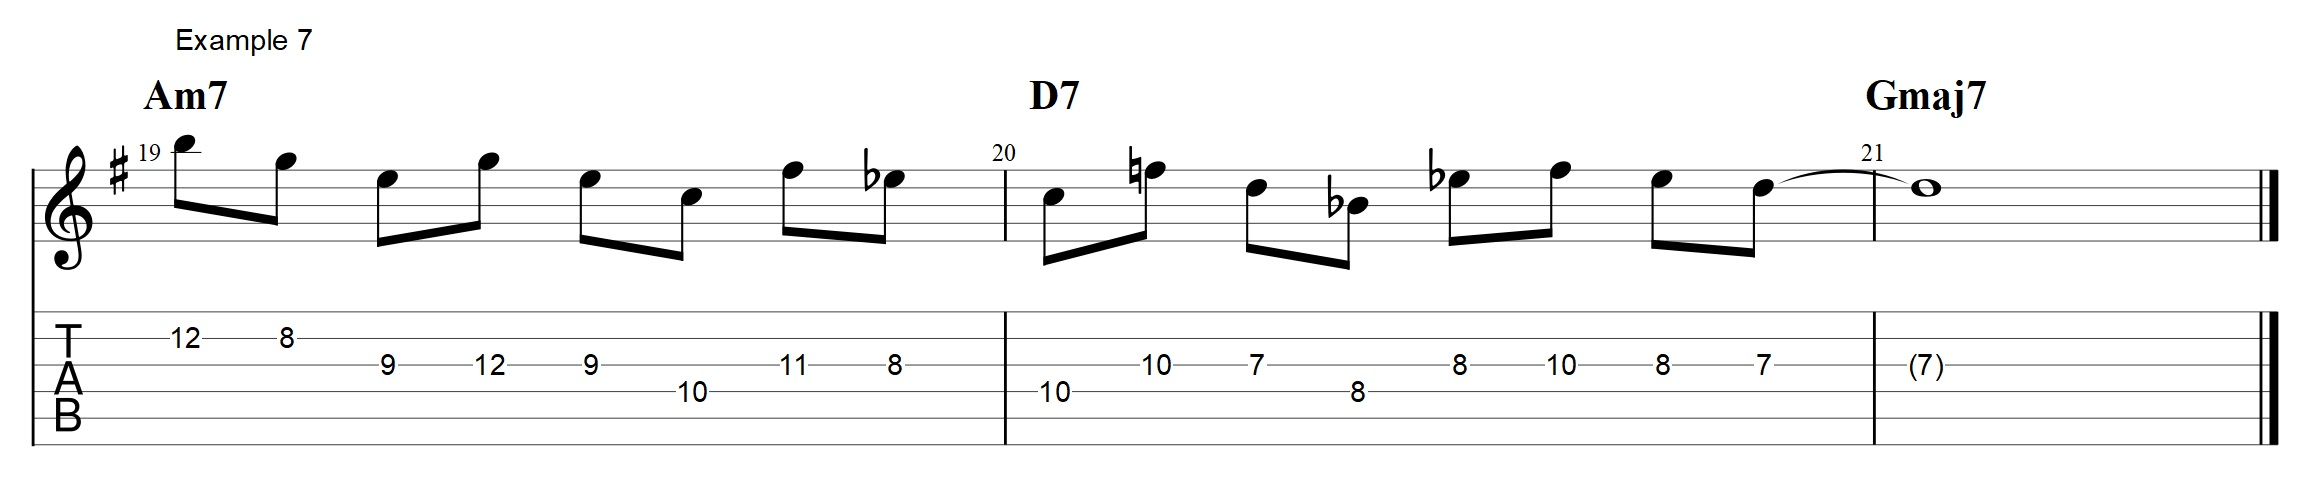 More Melodic Guitar Solos - Three Critical Techniques